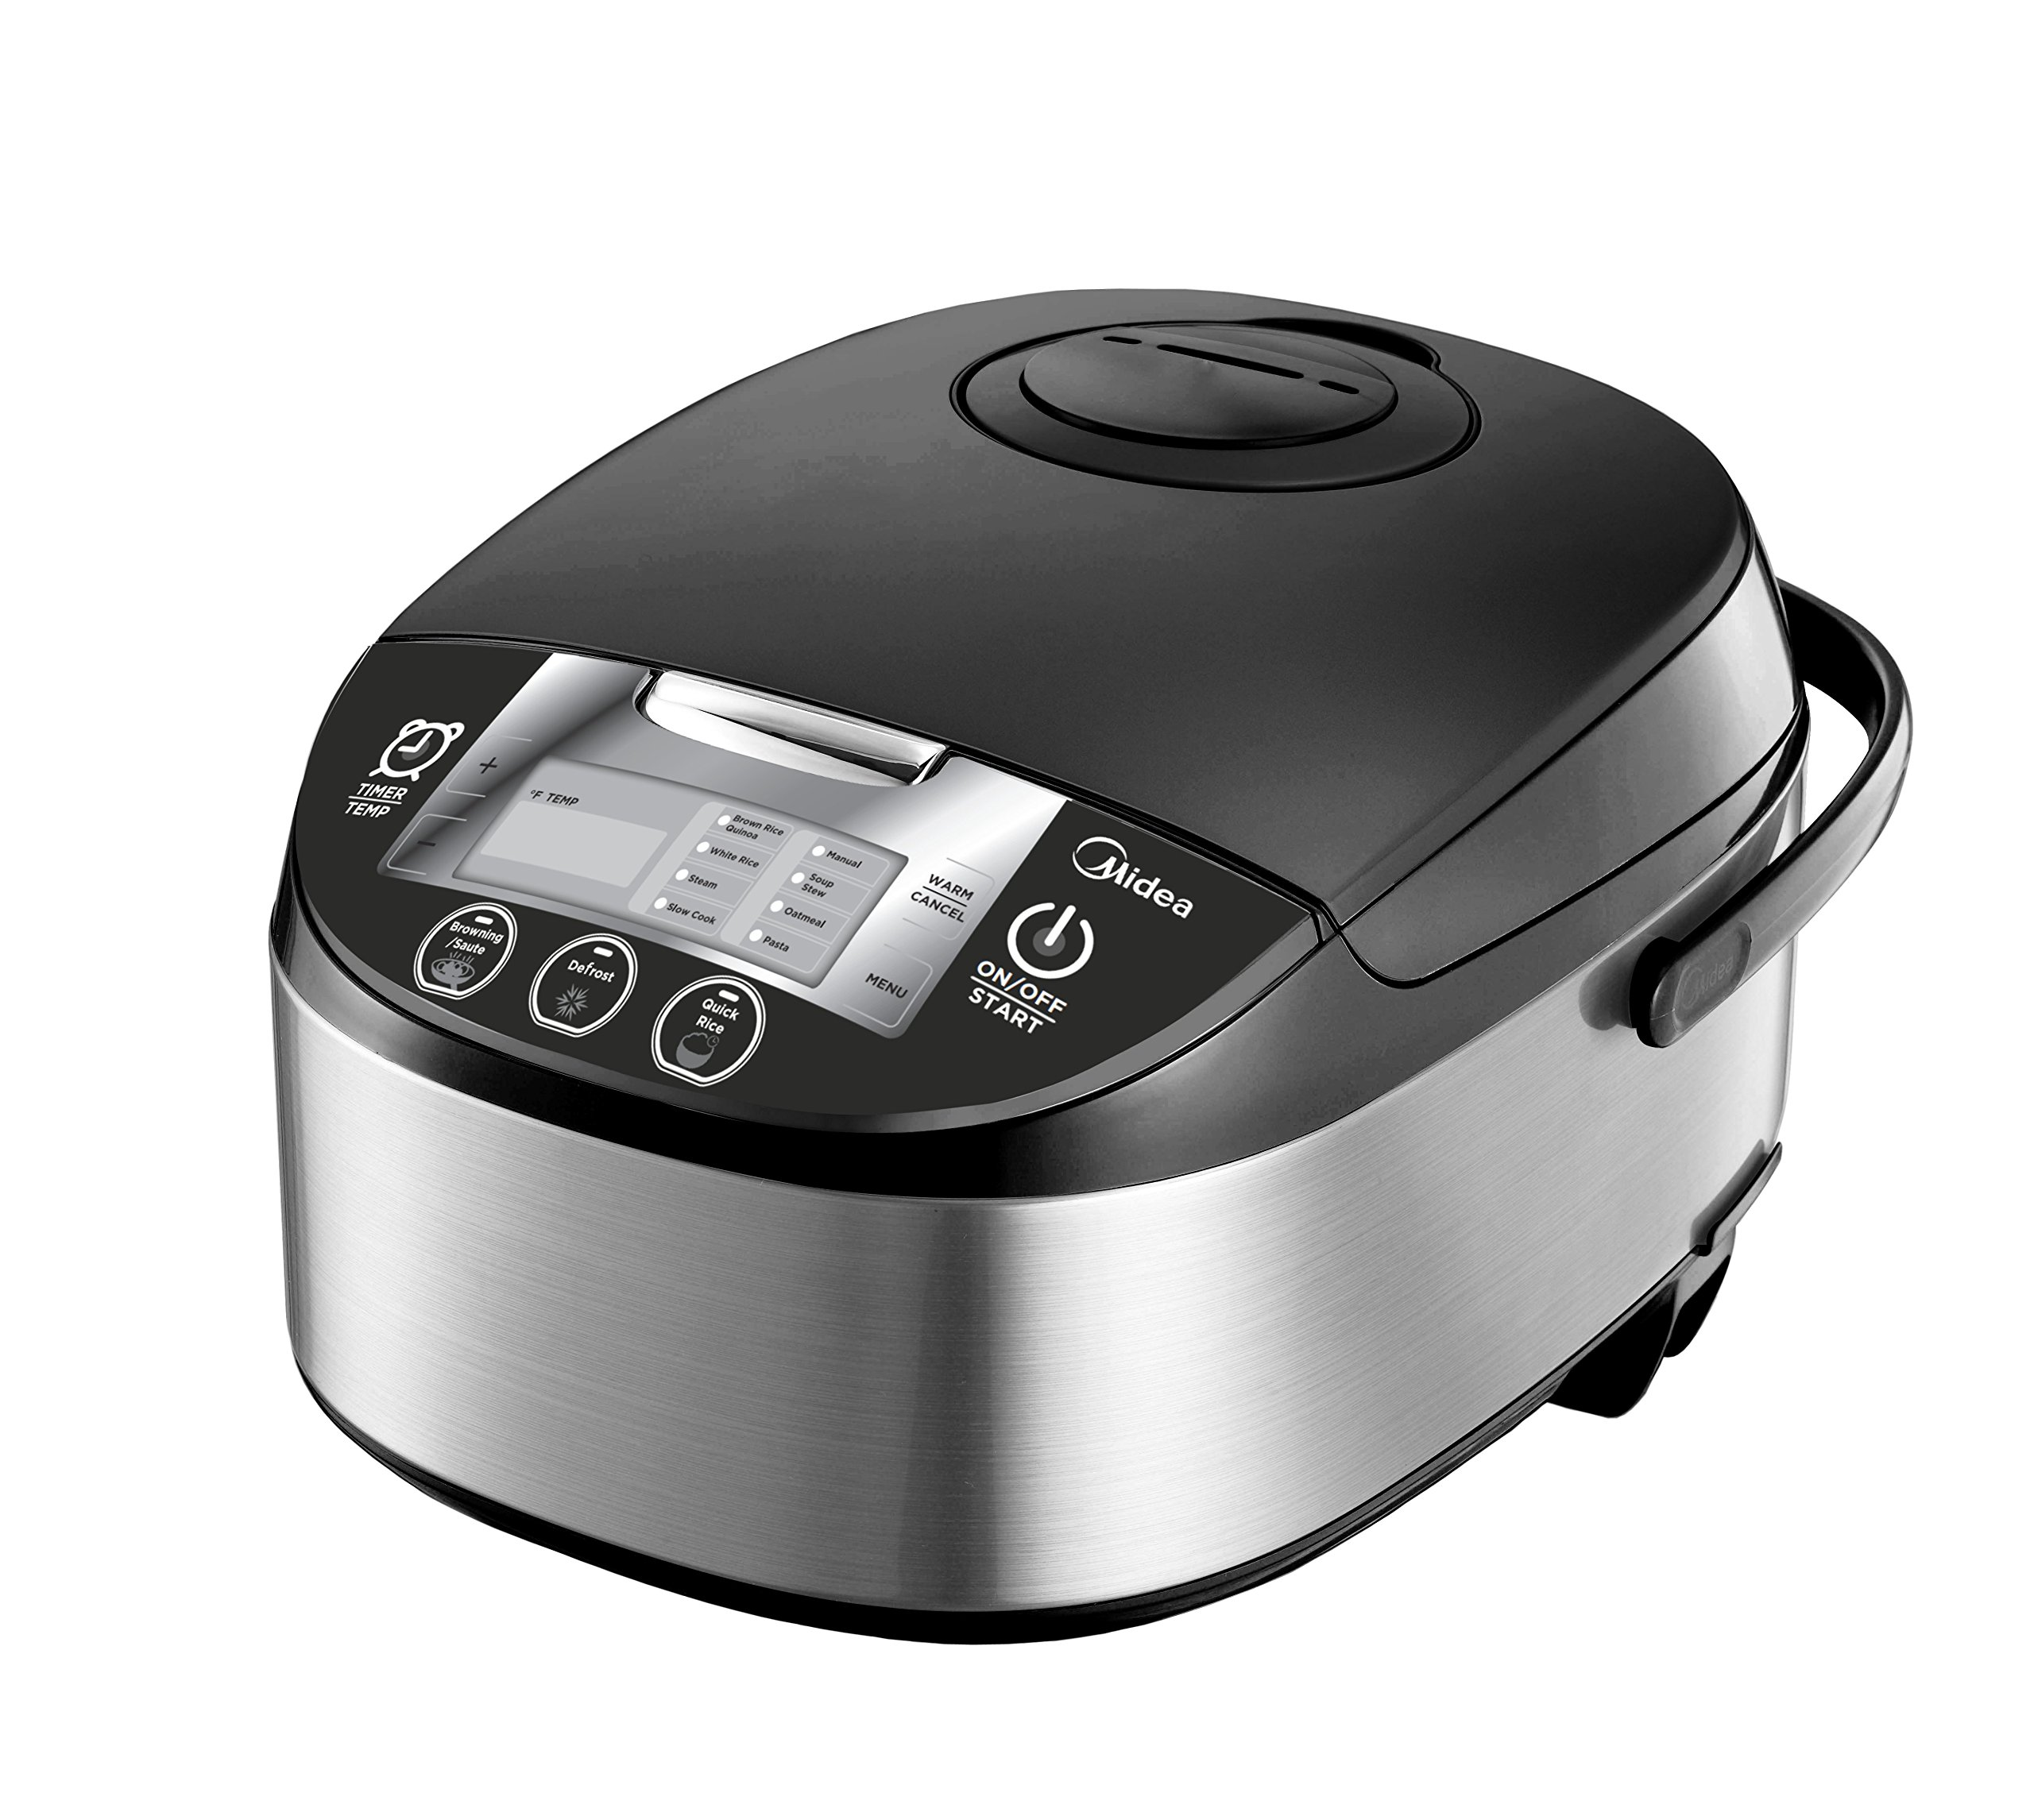 Midea 5 Quart 8-in-1 TasteMaker Rice Cooker/Multi-Functional Cooker (MMC1710-B), Stainless Steel with Black Lid